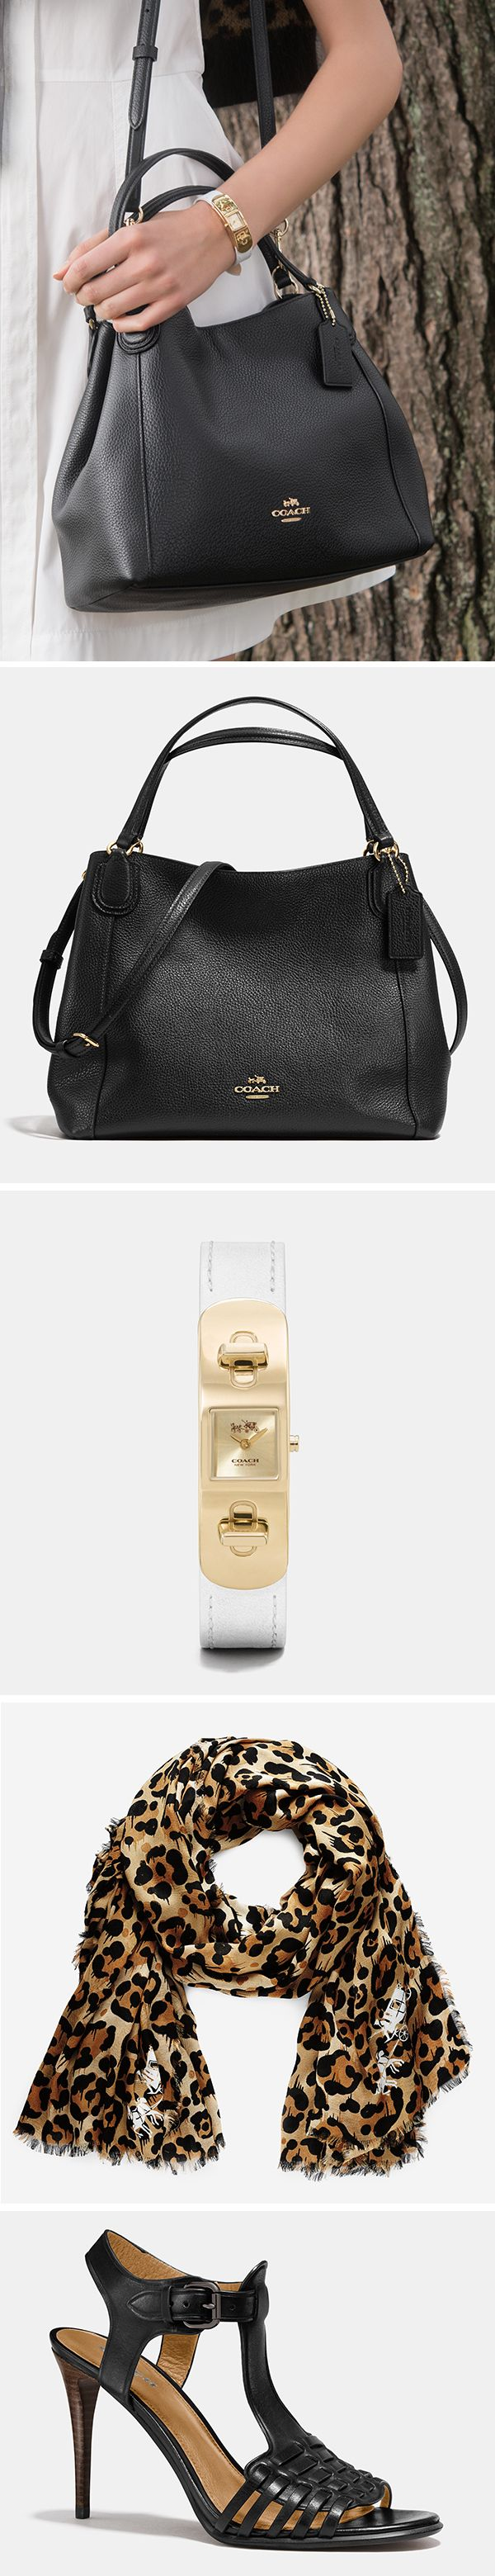 Made to wear now or wear later, the Edie 28 is a versatile, black pebble leather shoulder bag. Pair it with a leopard print scarf and black sandals for summer chic.